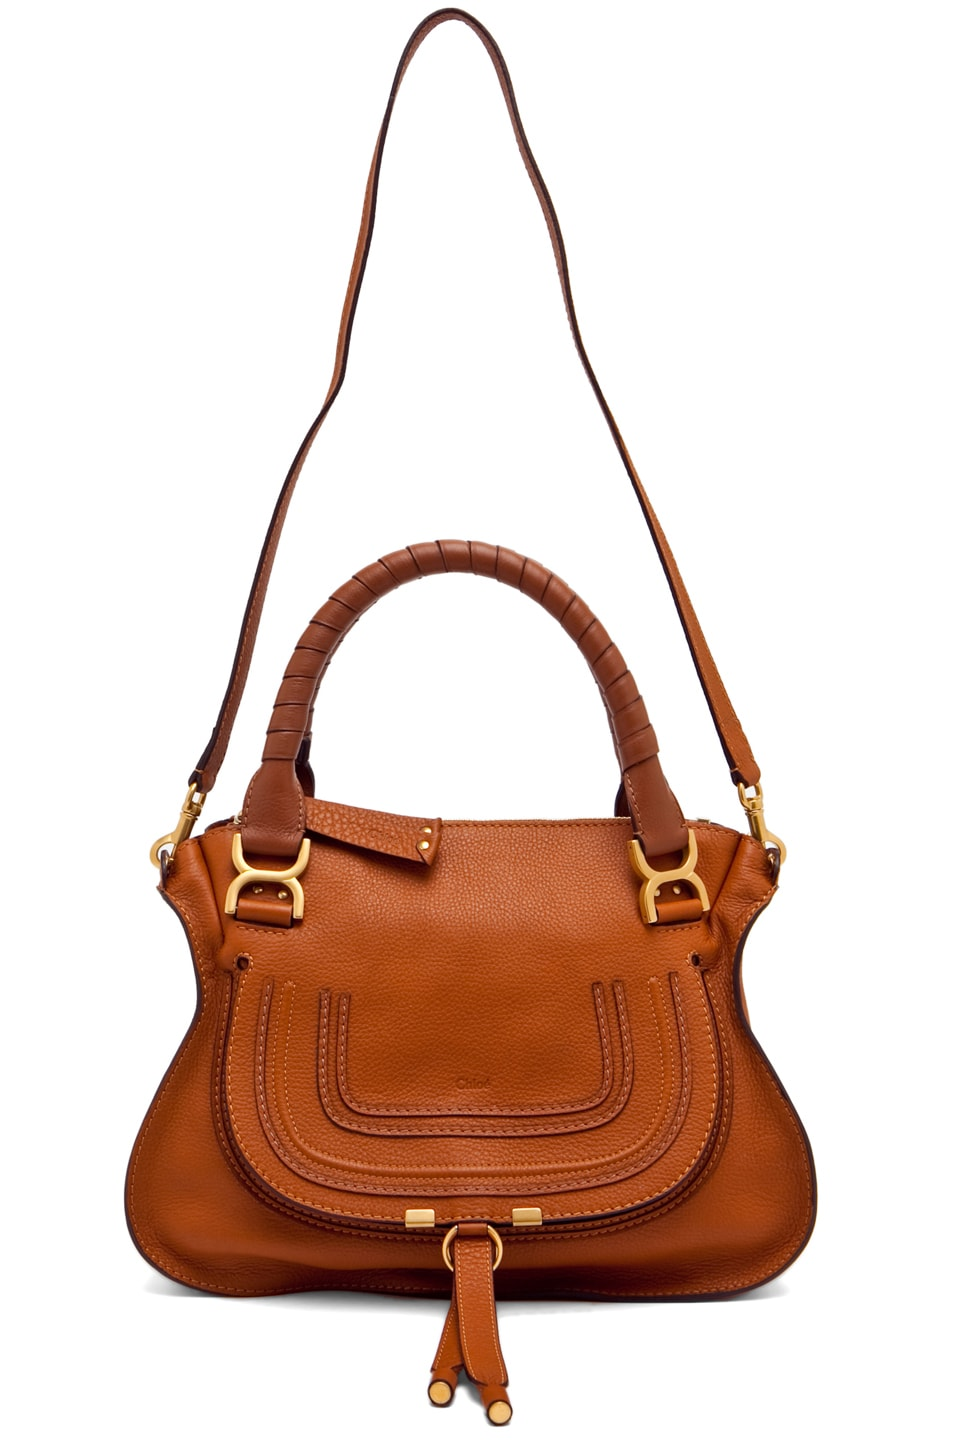 Image 5 of Chloe Small Marcie Shoulder Bag in Tan